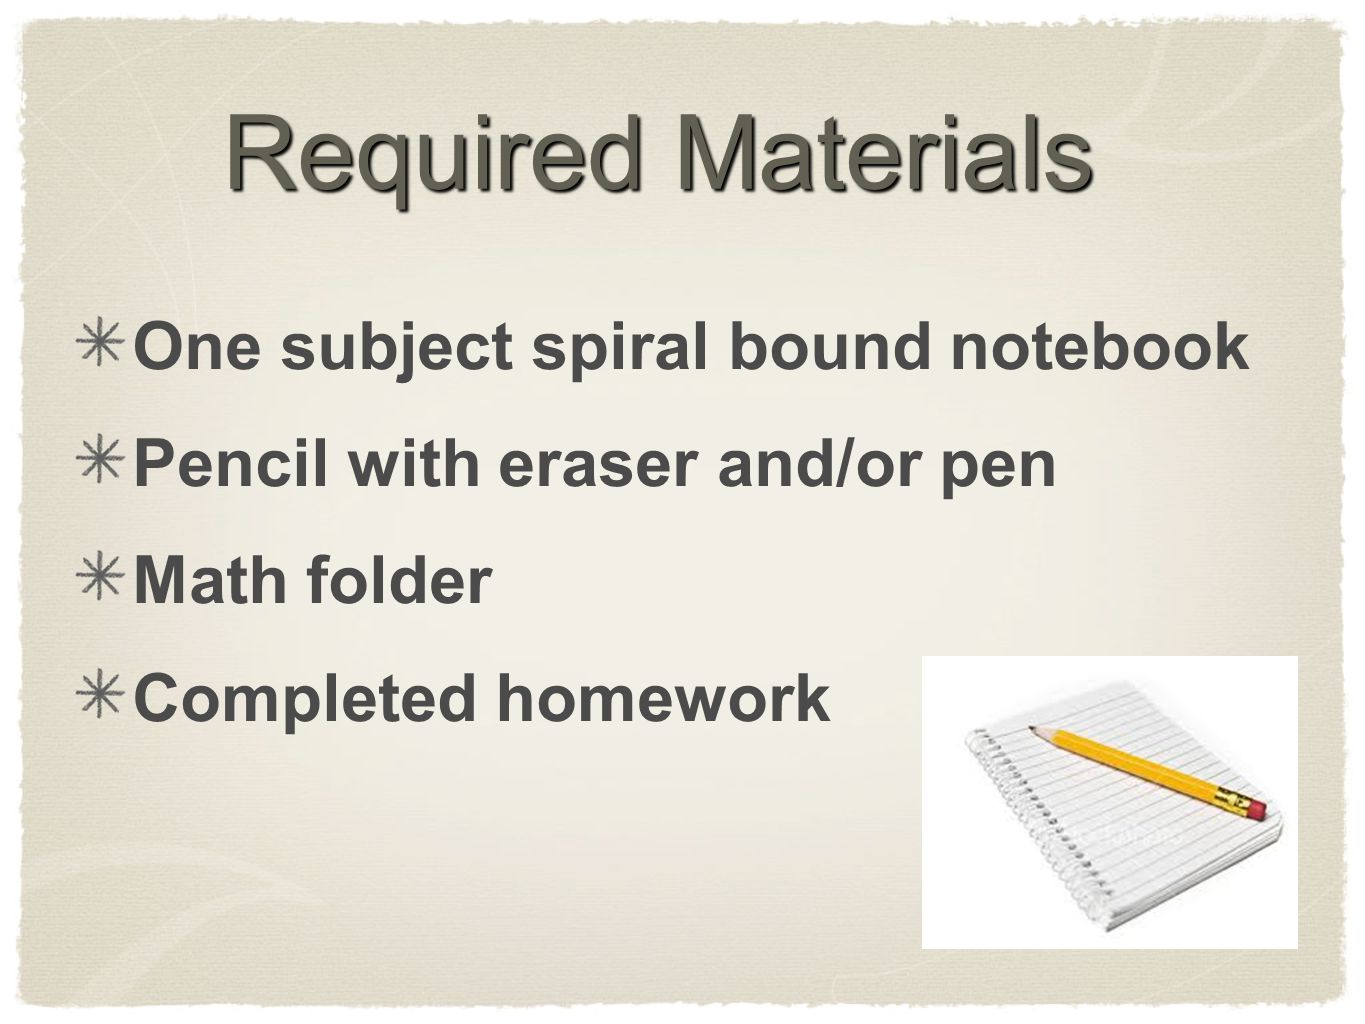 Required Materials One subject spiral bound notebook Pencil with eraser and/or pen Math folder Completed homework